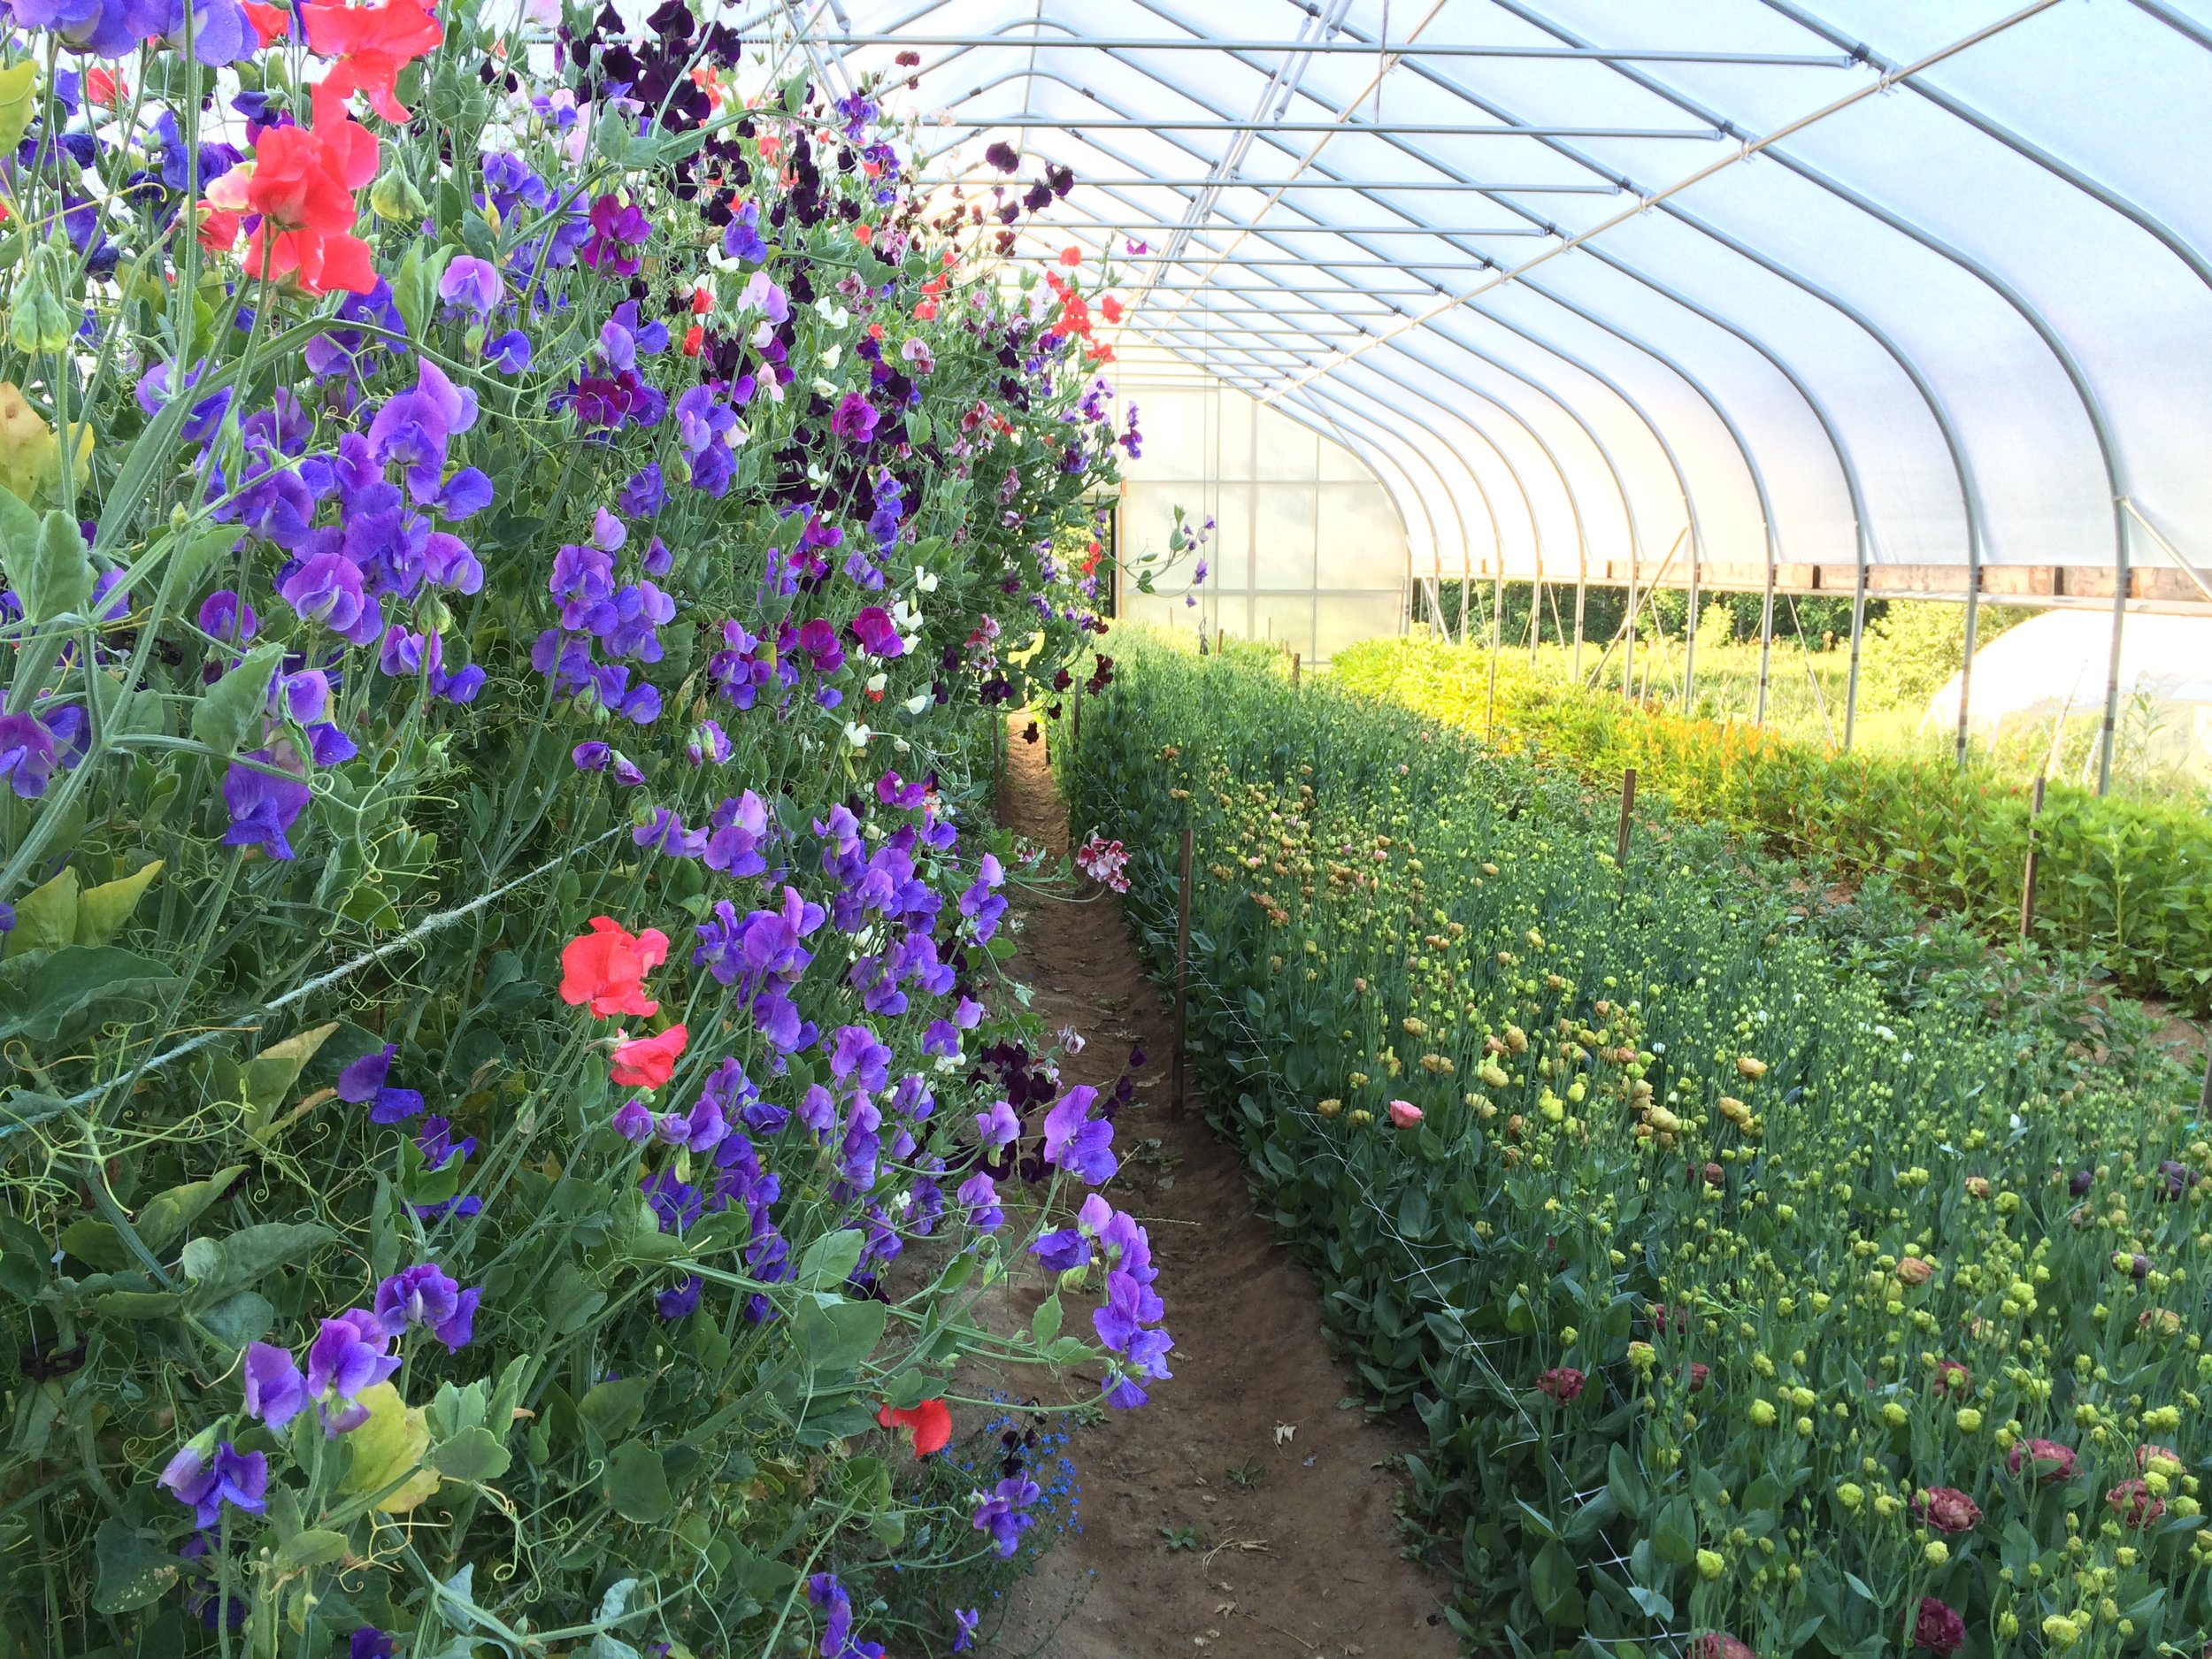 The high tunnel's protected climate allows us to plant more intensively and extend the season earlier in spring and later in fall